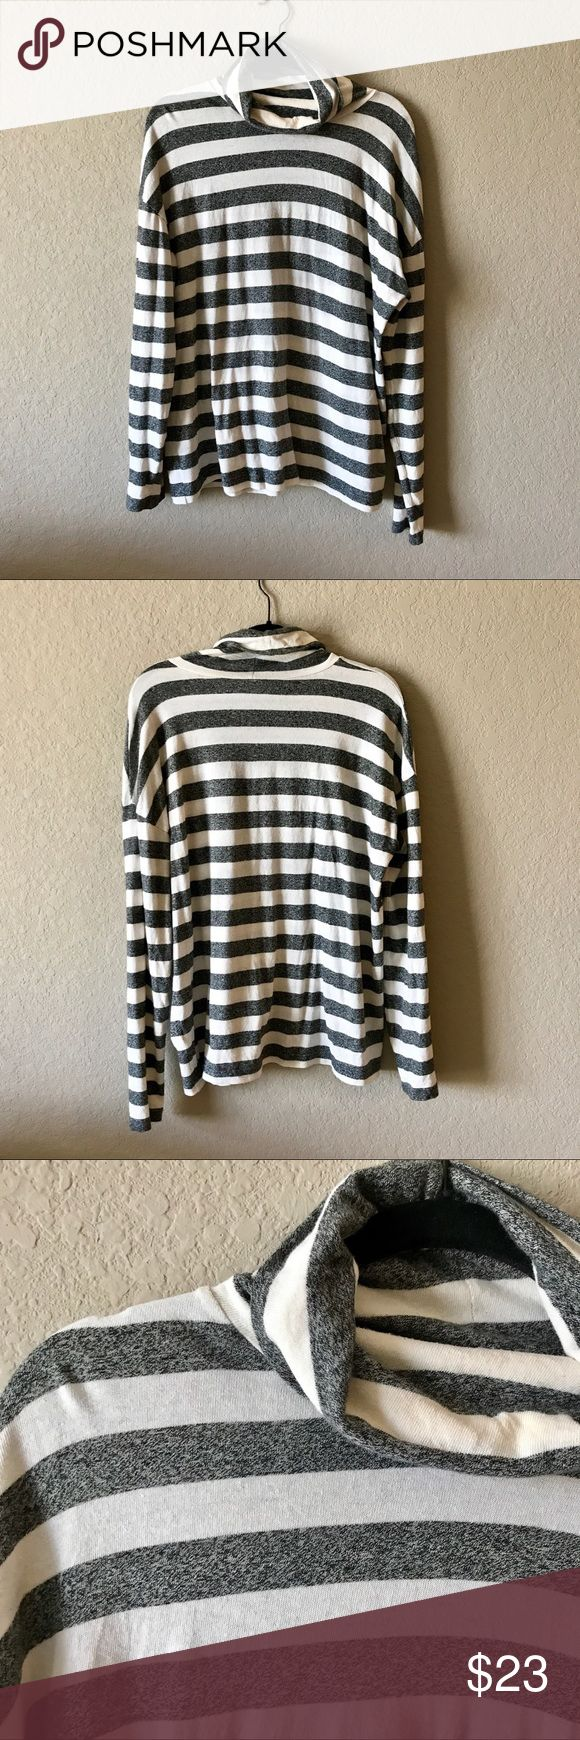 """J. Crew Oversized Grey & White Striped Top J. Crew Oversized Grey & White Striped Top. Great used condition. Slouchy turtleneck style. Very comfortable and perfect to wear with leggings! 24"""" armpit to armpit; 26"""" shoulder to hem. 100% cotton.  ☑️ Bundles (15% off 2+ items) 👍 Open to reasonable offers 🚫 Trades J. Crew Tops"""